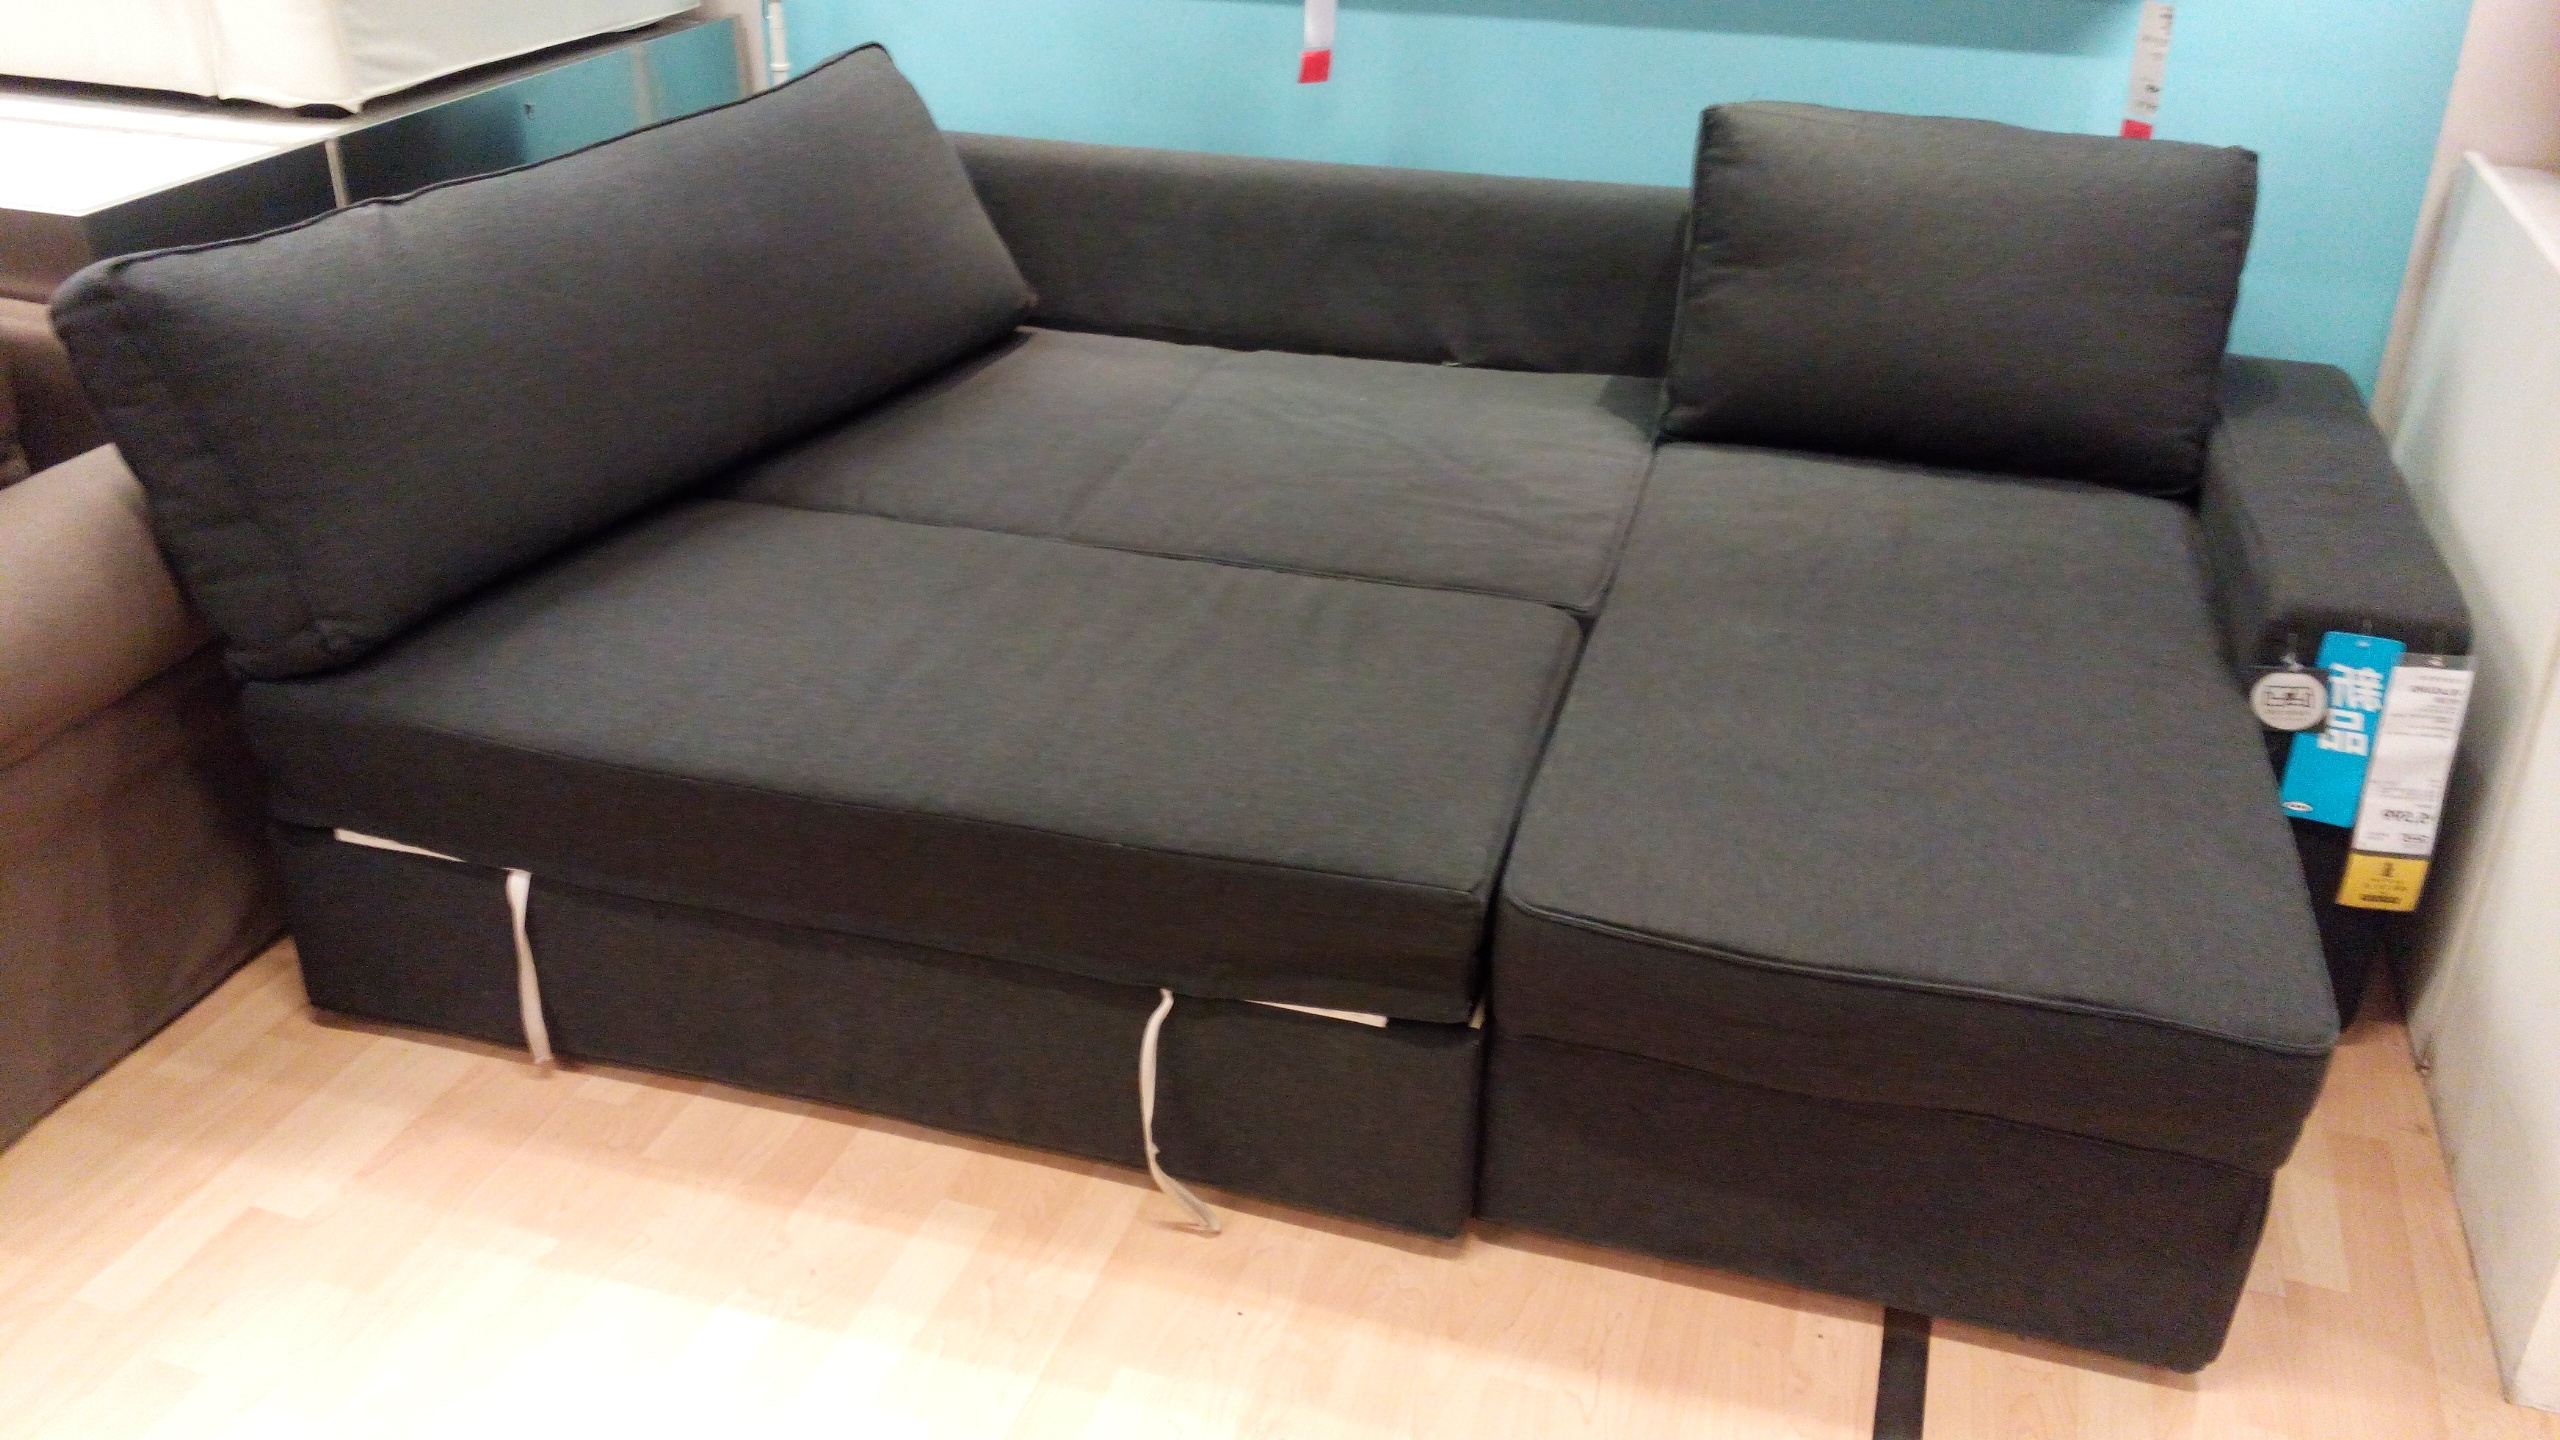 2018 Ikea Vilasund And Backabro Review – Return Of The Sofa Bed Clones! Pertaining To Ikea Karlstad Chaises (View 2 of 15)